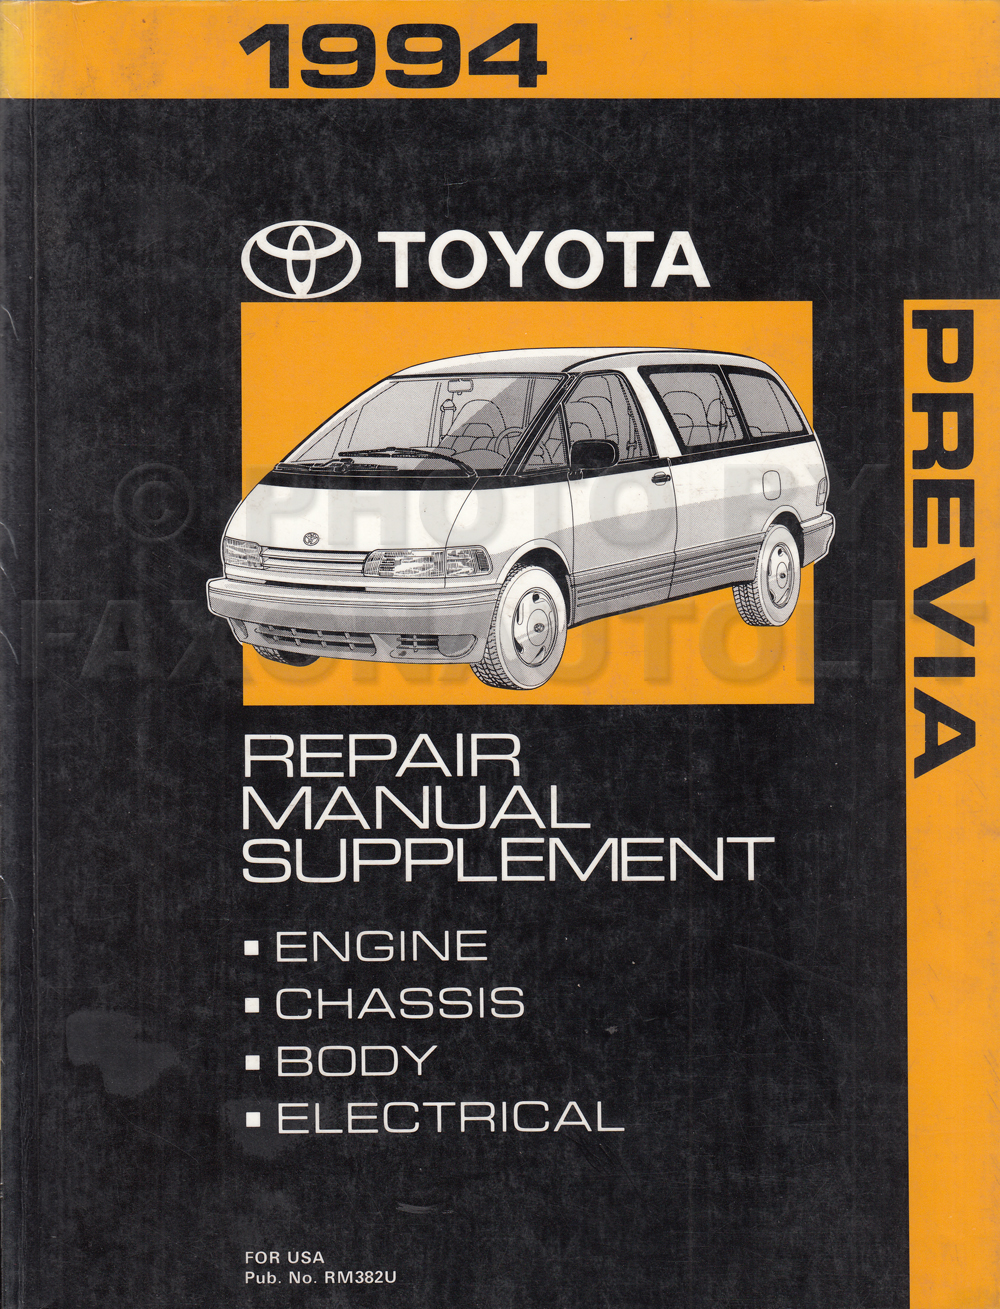 1994ToyotaPreviaORMS search 1995 toyota previa wiring diagram at n-0.co